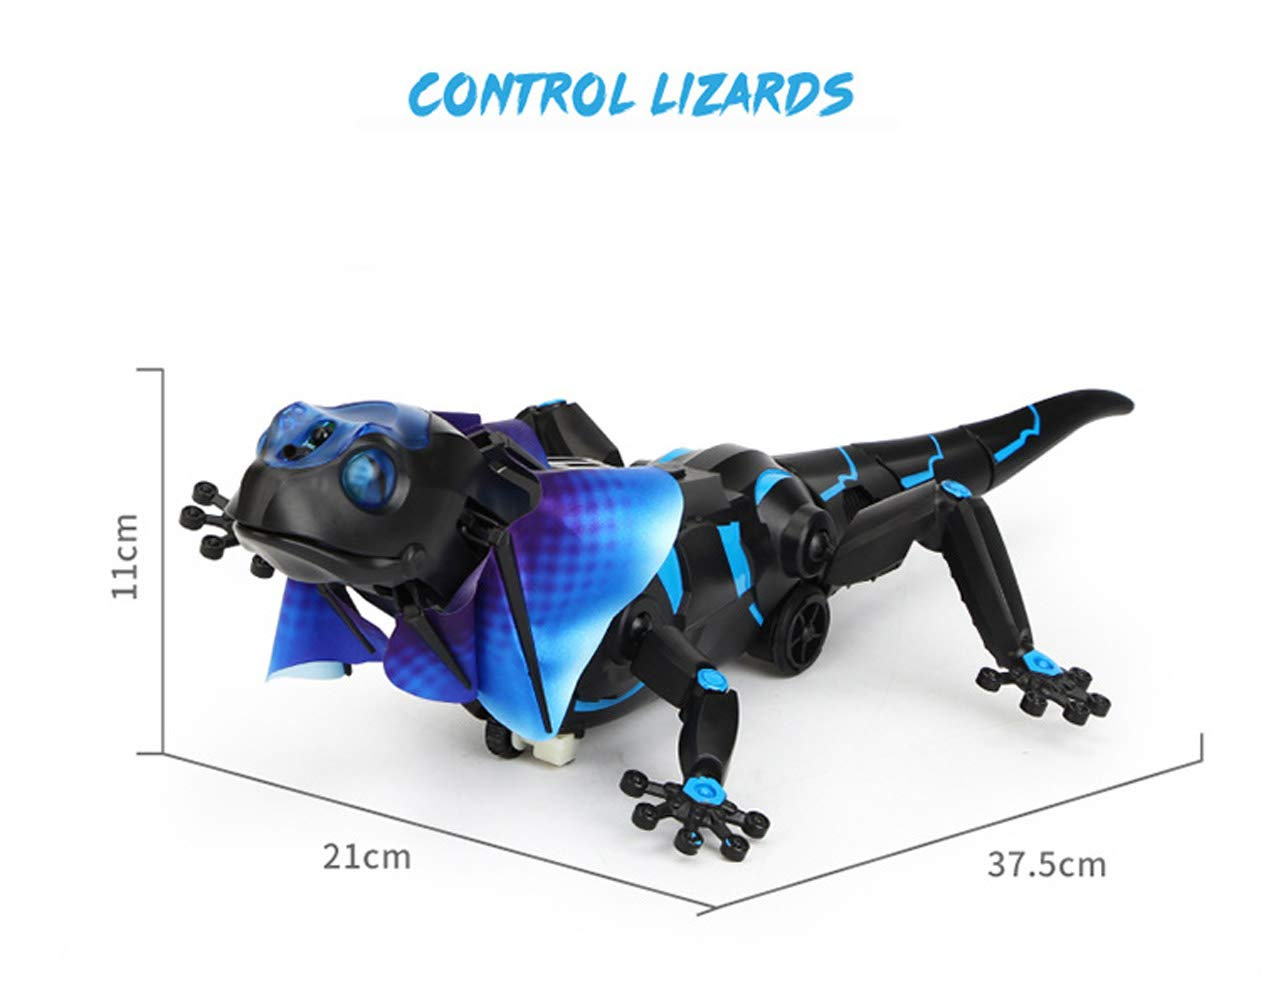 SOWOFA RC Animals Remote Controls Infrared Sensing Lizard Realistic Toy Moving Walking Color Change w/ Sound Lighting Electric Pet Joke Toys by SOWOFA (Image #1)